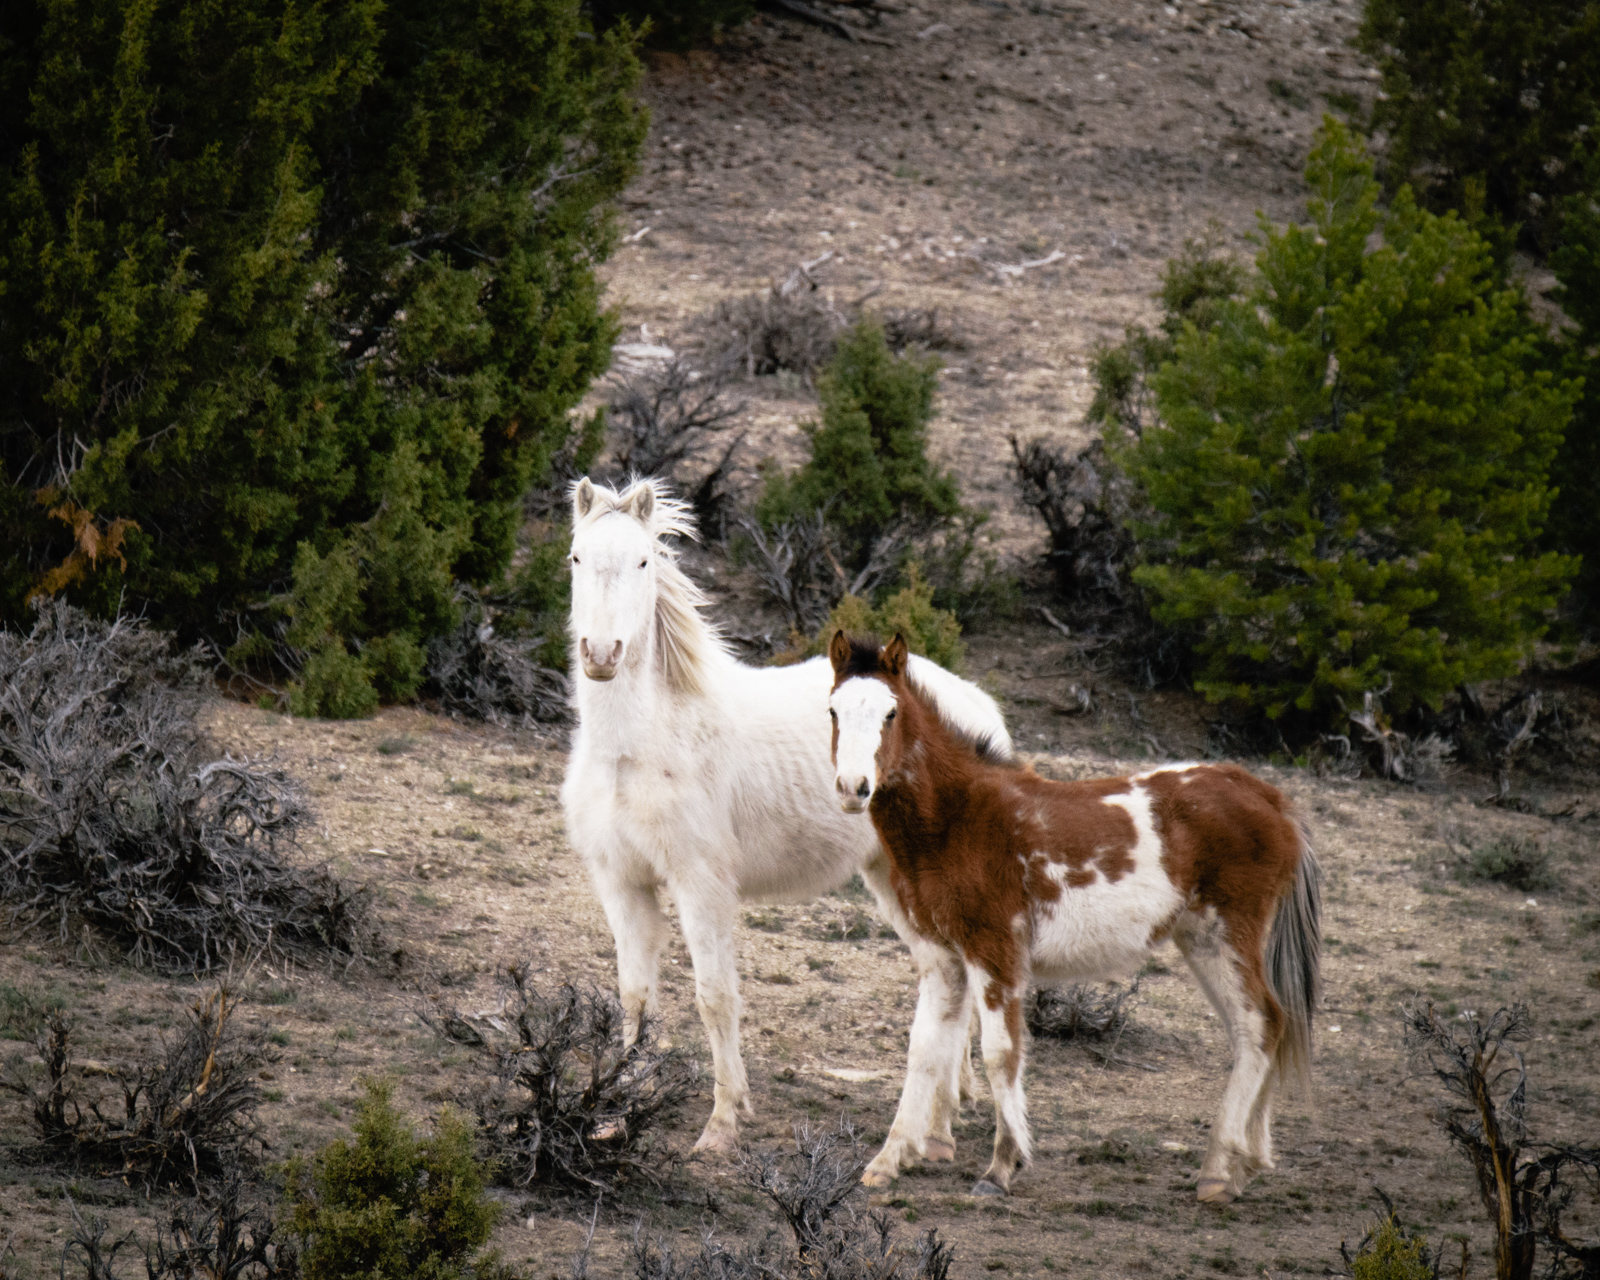 Copy of White Horse and Foal.JPG